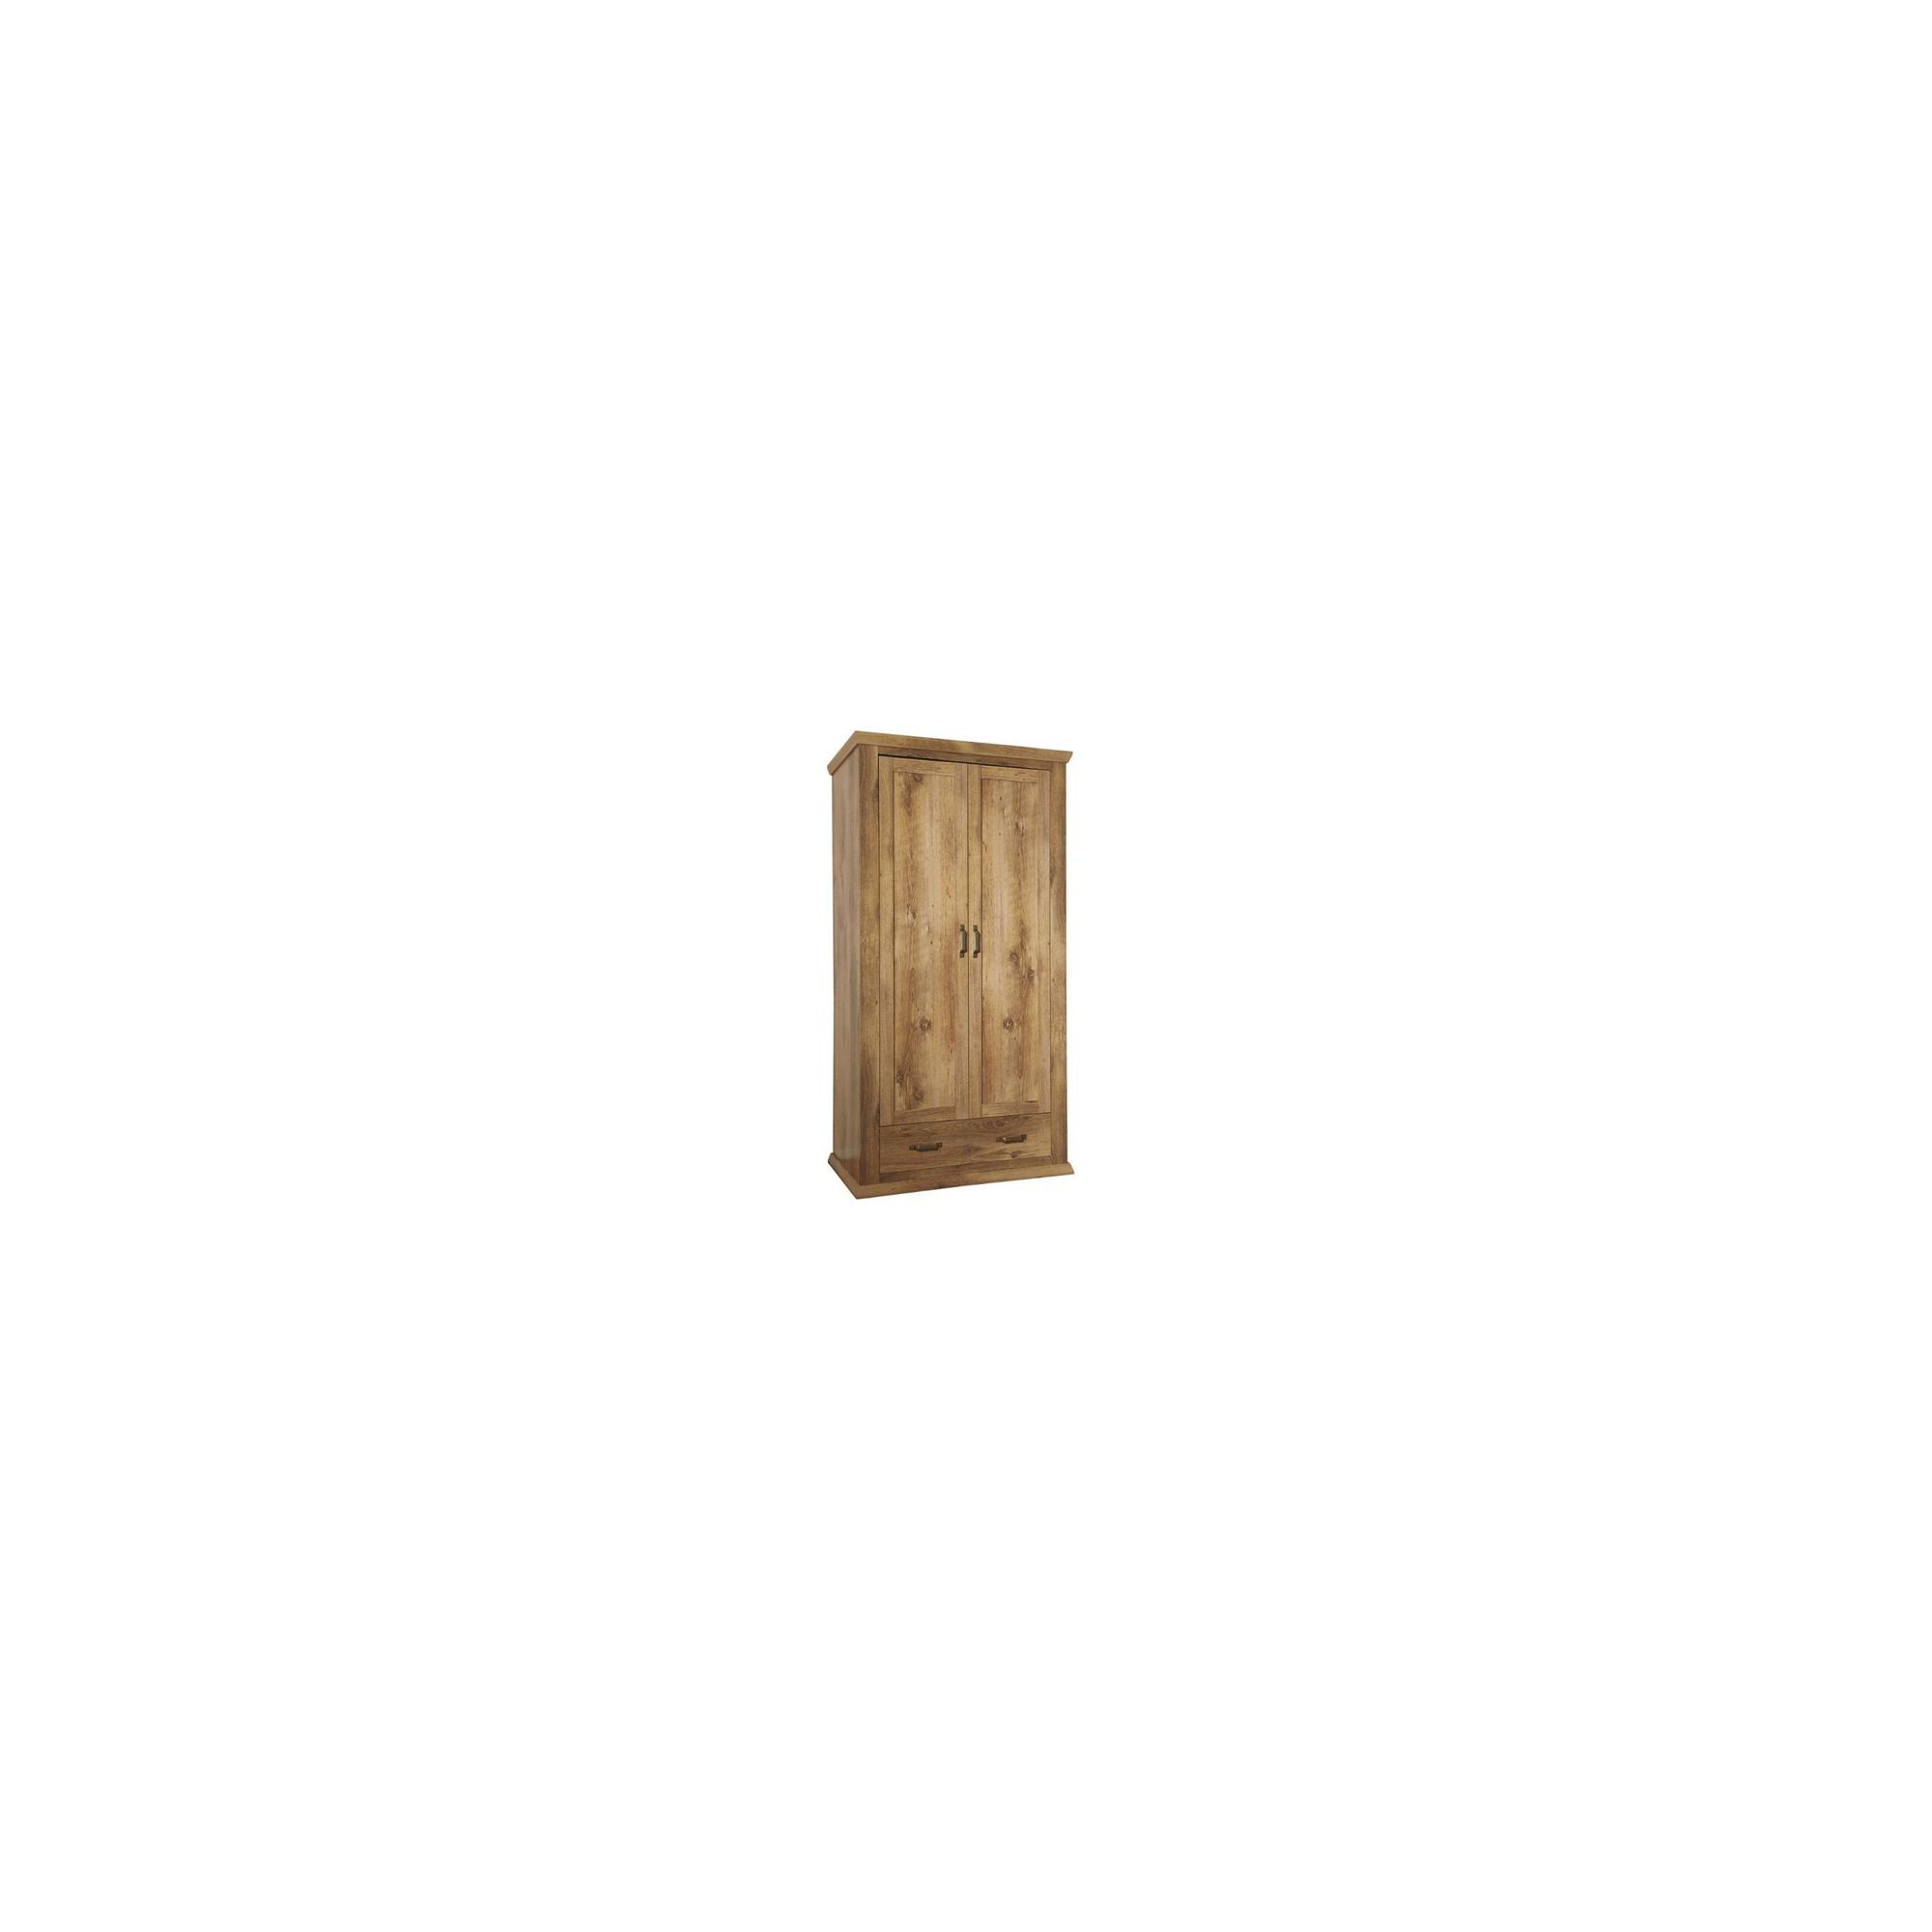 Urbane Designs Warwick 2 Door 1 Drawer Wardrobe at Tesco Direct